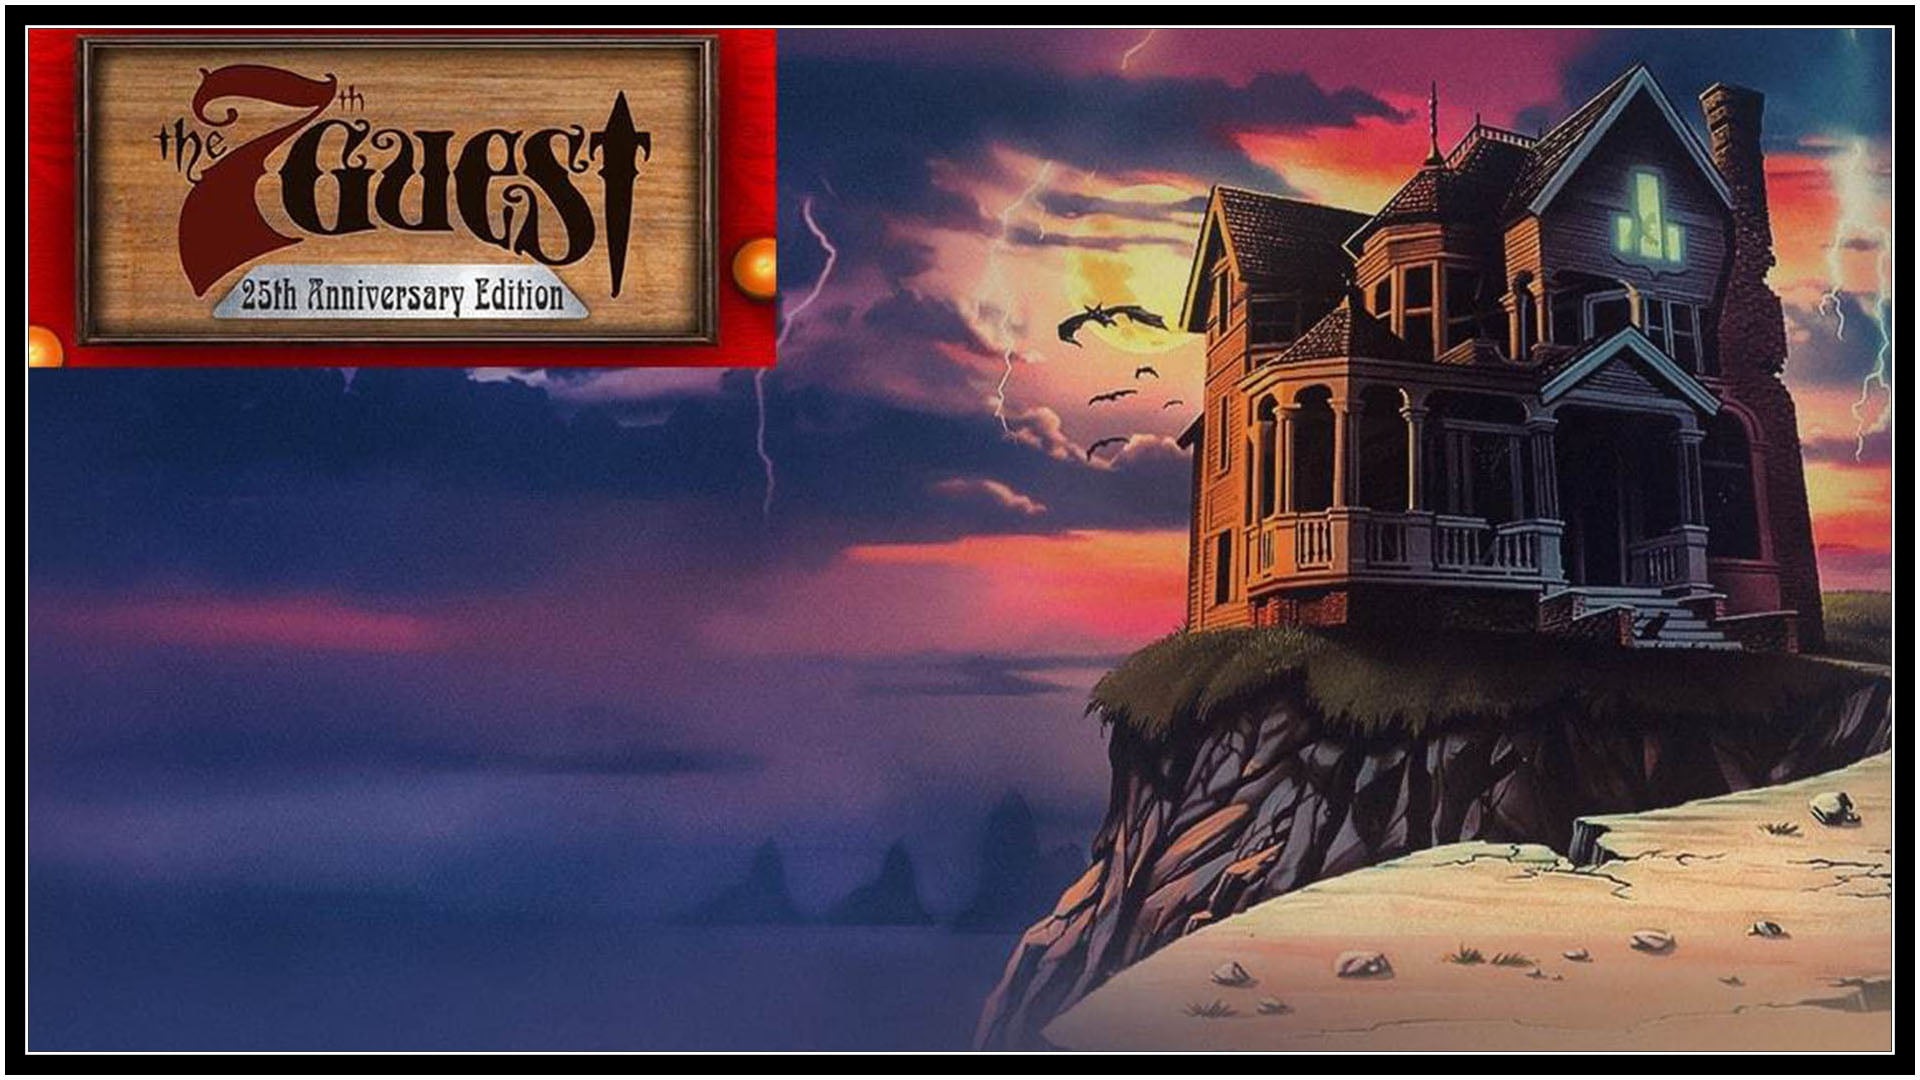 The 7th Guest: 25th Anniversary Edition (PC) review